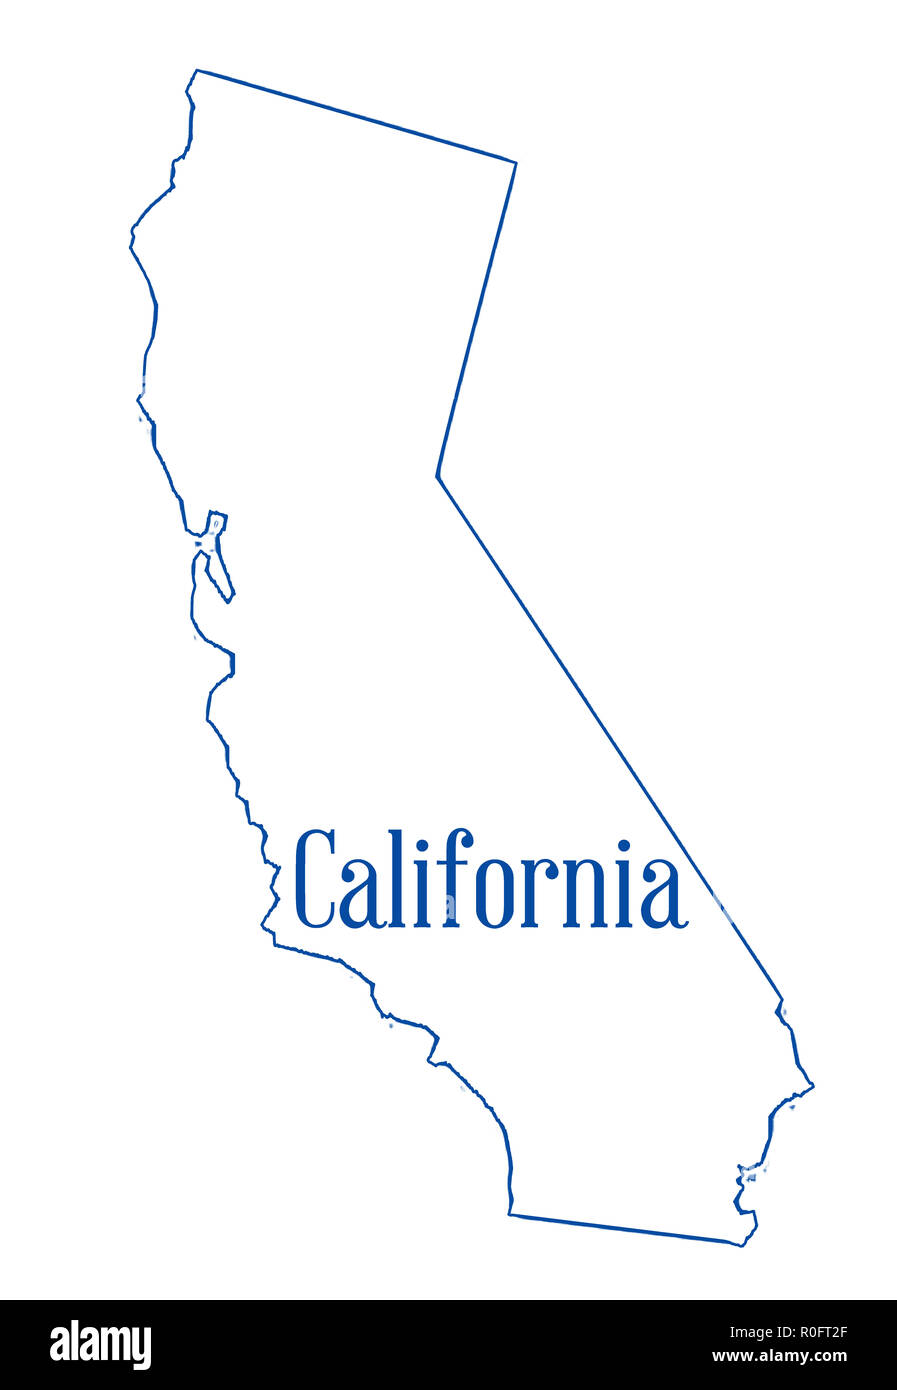 State map outline of California over a white background Stock Photo on